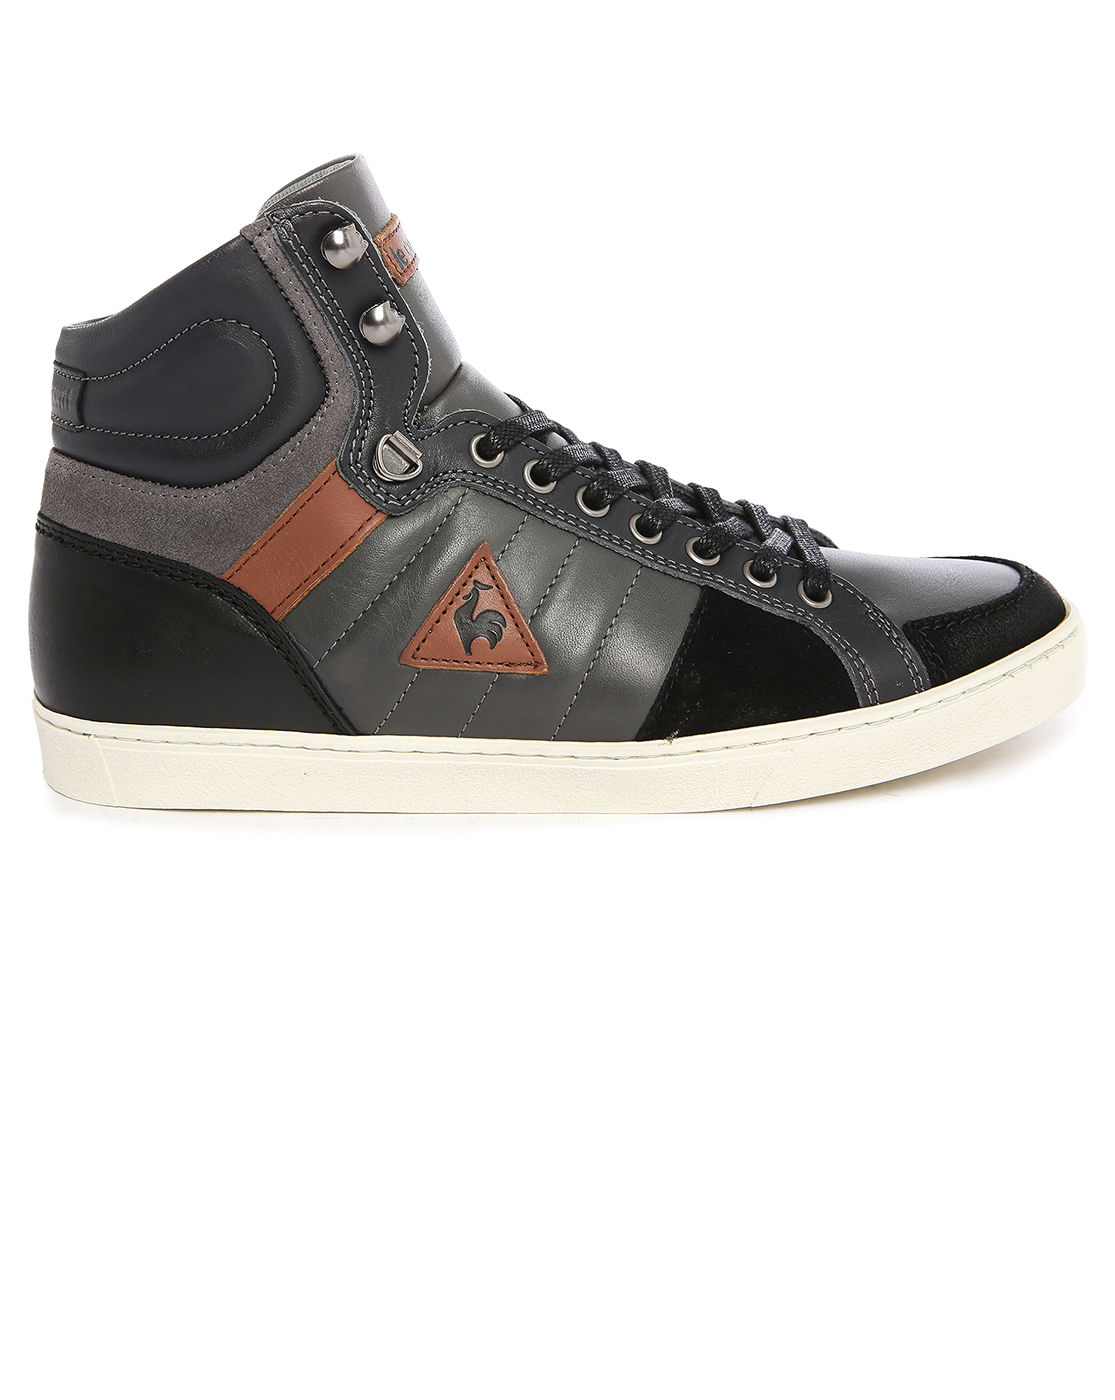 le coq sportif perpignan charcoal leather mid sneakers in gray for men grey lyst. Black Bedroom Furniture Sets. Home Design Ideas